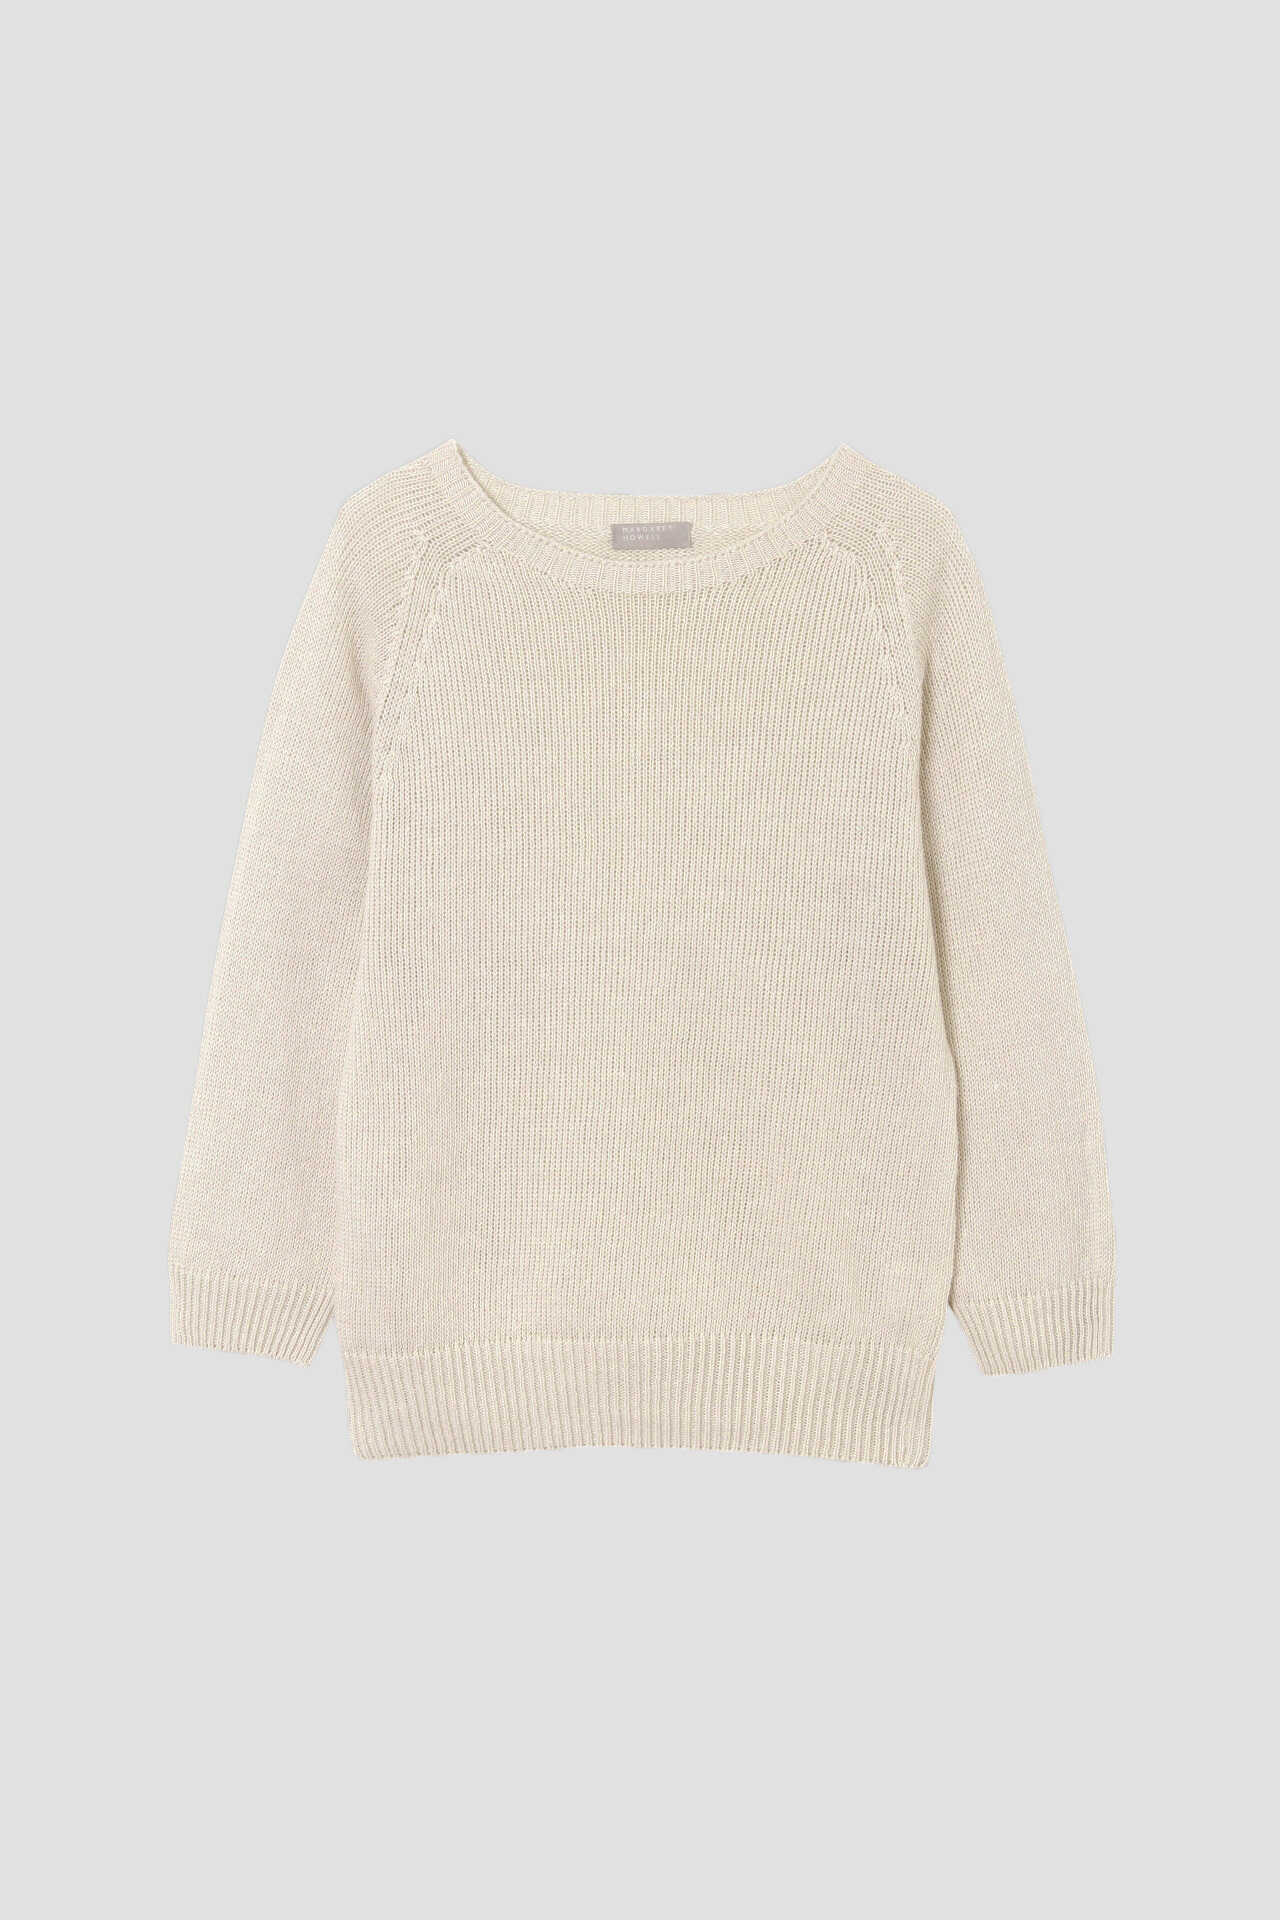 LINEN COTTON CREW NECK6